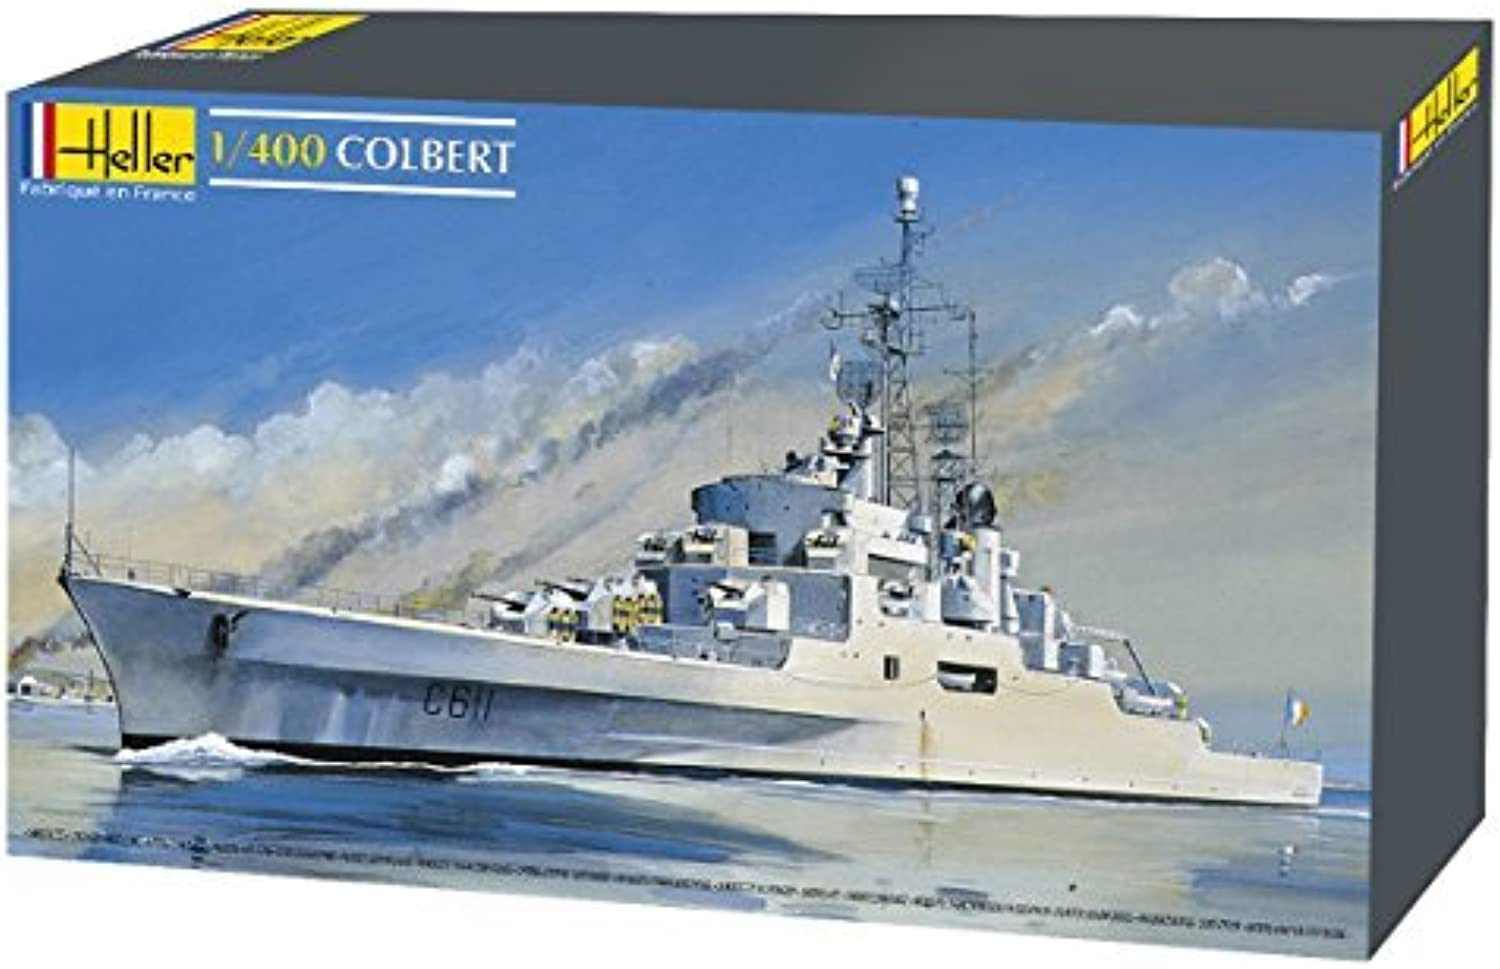 alto descuento Heller Colbert French Anti-Air Cruiser Cruiser Cruiser Boat Model Building Kit by Heller  el mas reciente